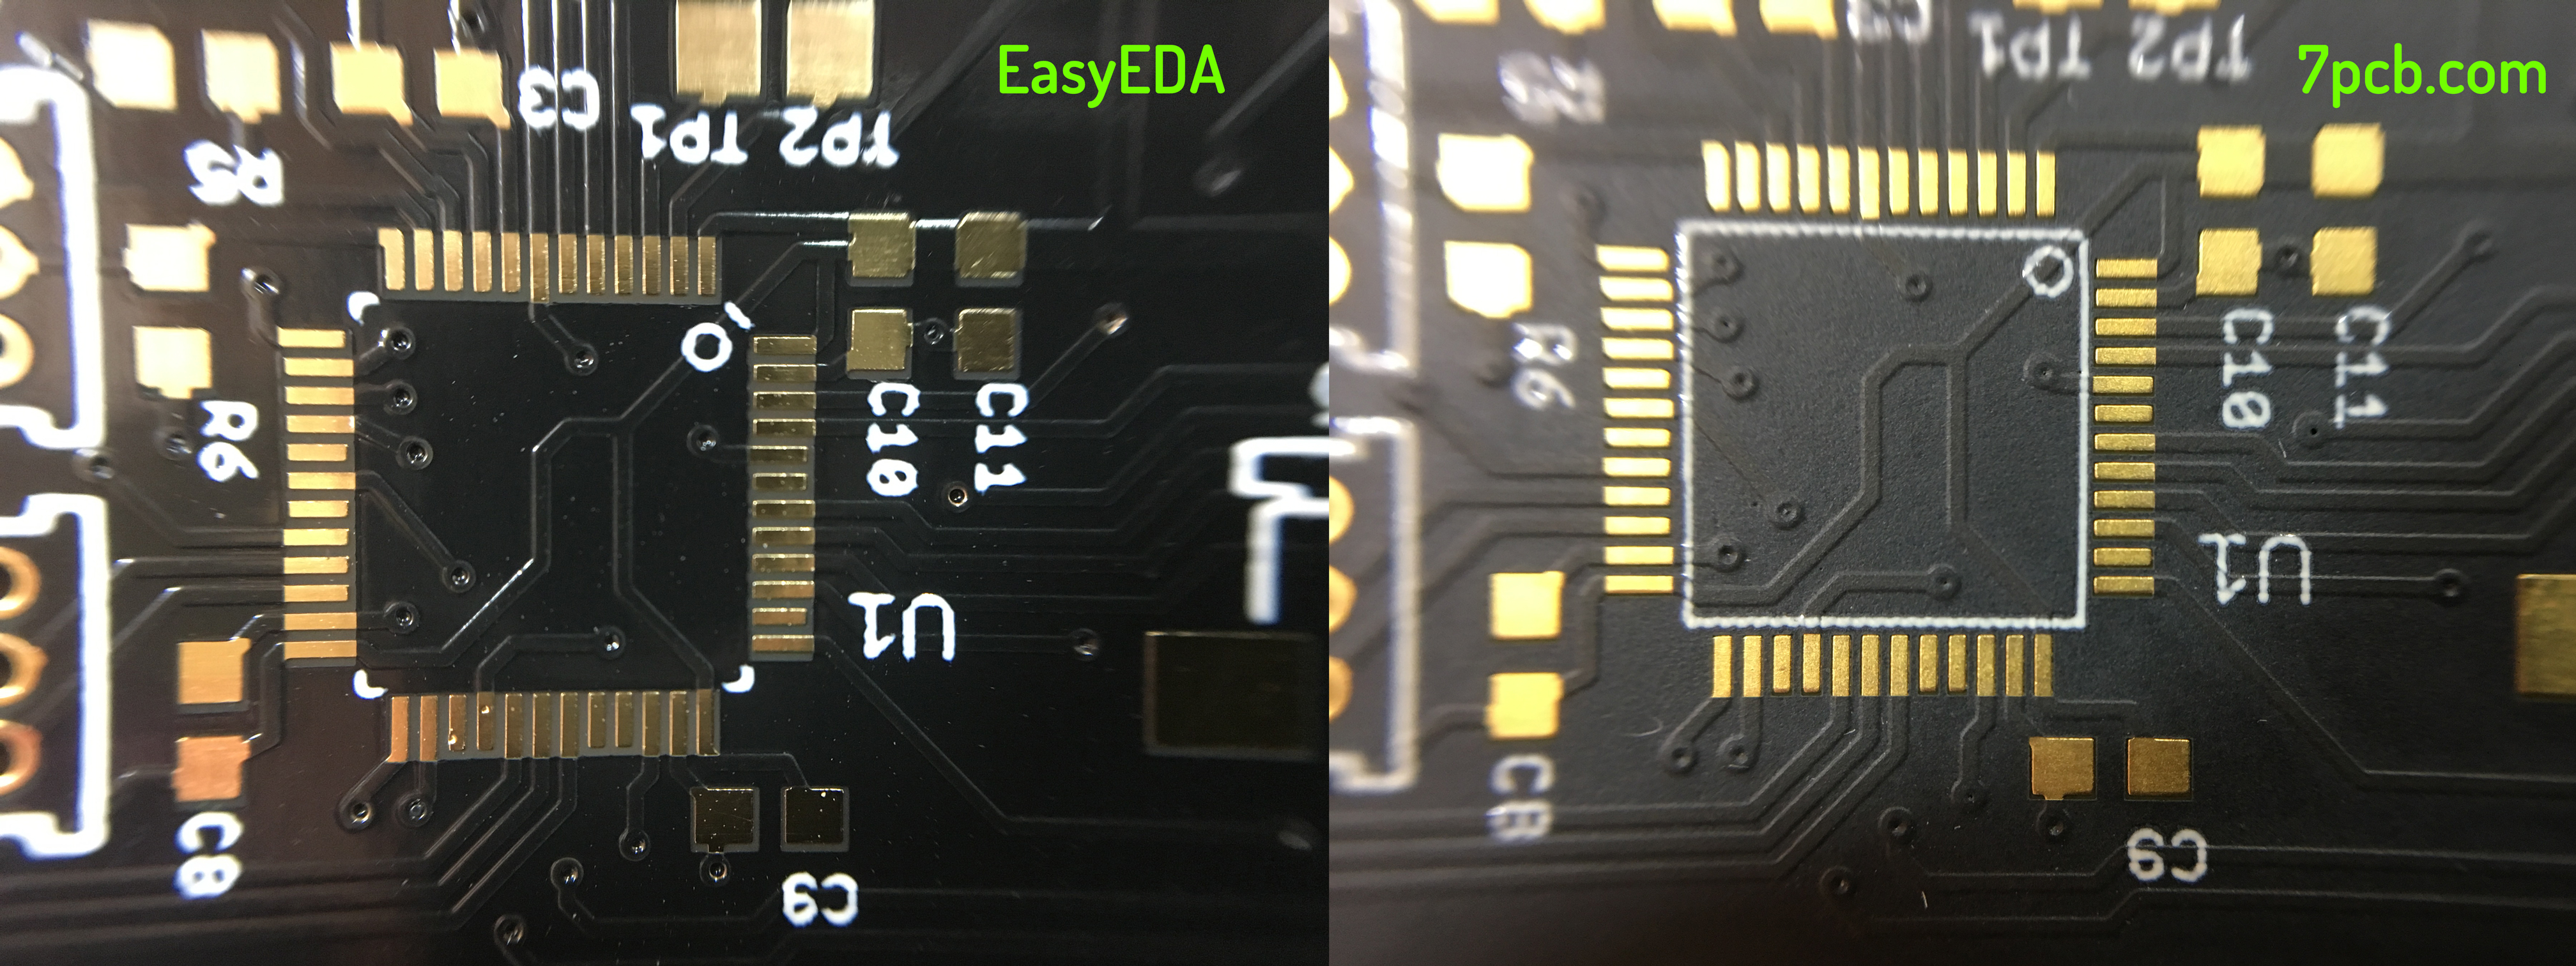 Easyeda Voltlog Is An Amazing Free Online Circuit Simulator Which Very The Soldermask Alignment Not Perfect But Certainly Acceptable And Comparable Between Two Its Shifted On Same Axis Both Panels